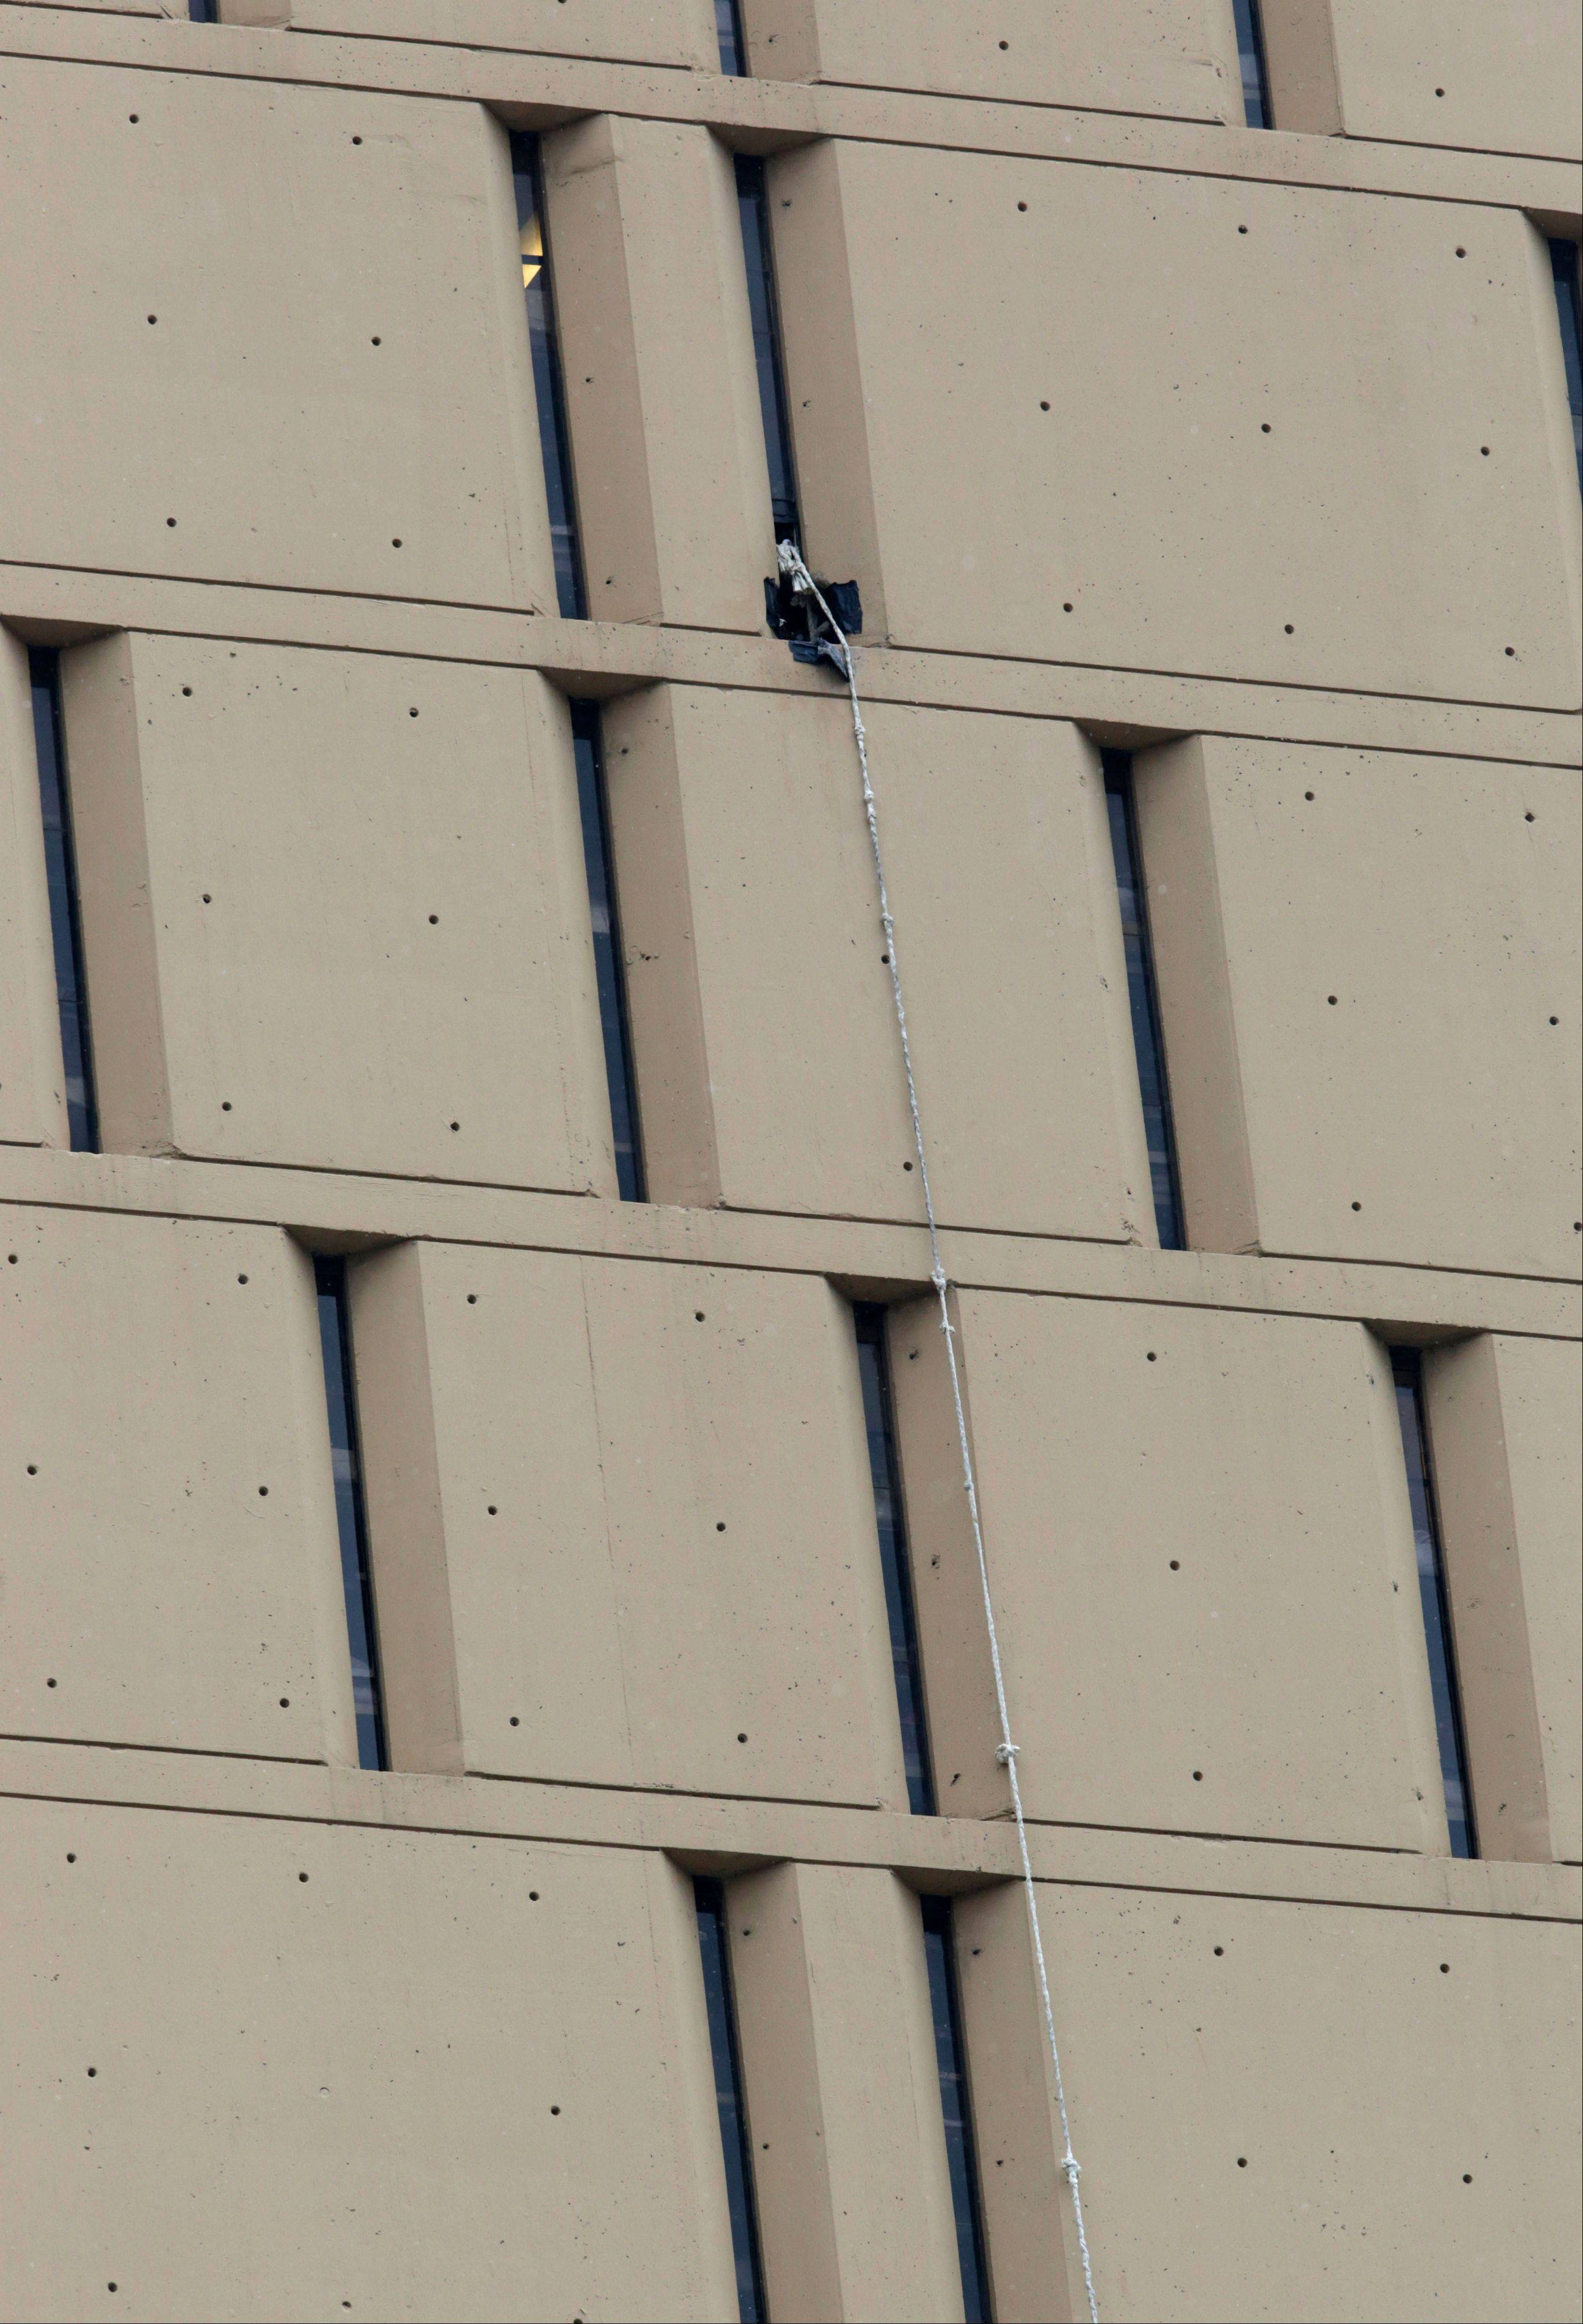 A rope dangles from a window on the back side of the Metropolitan Correctional Center on Dec. 18 in Chicago. Two convicted bank robbers used a knotted rope or bed sheets to escape.